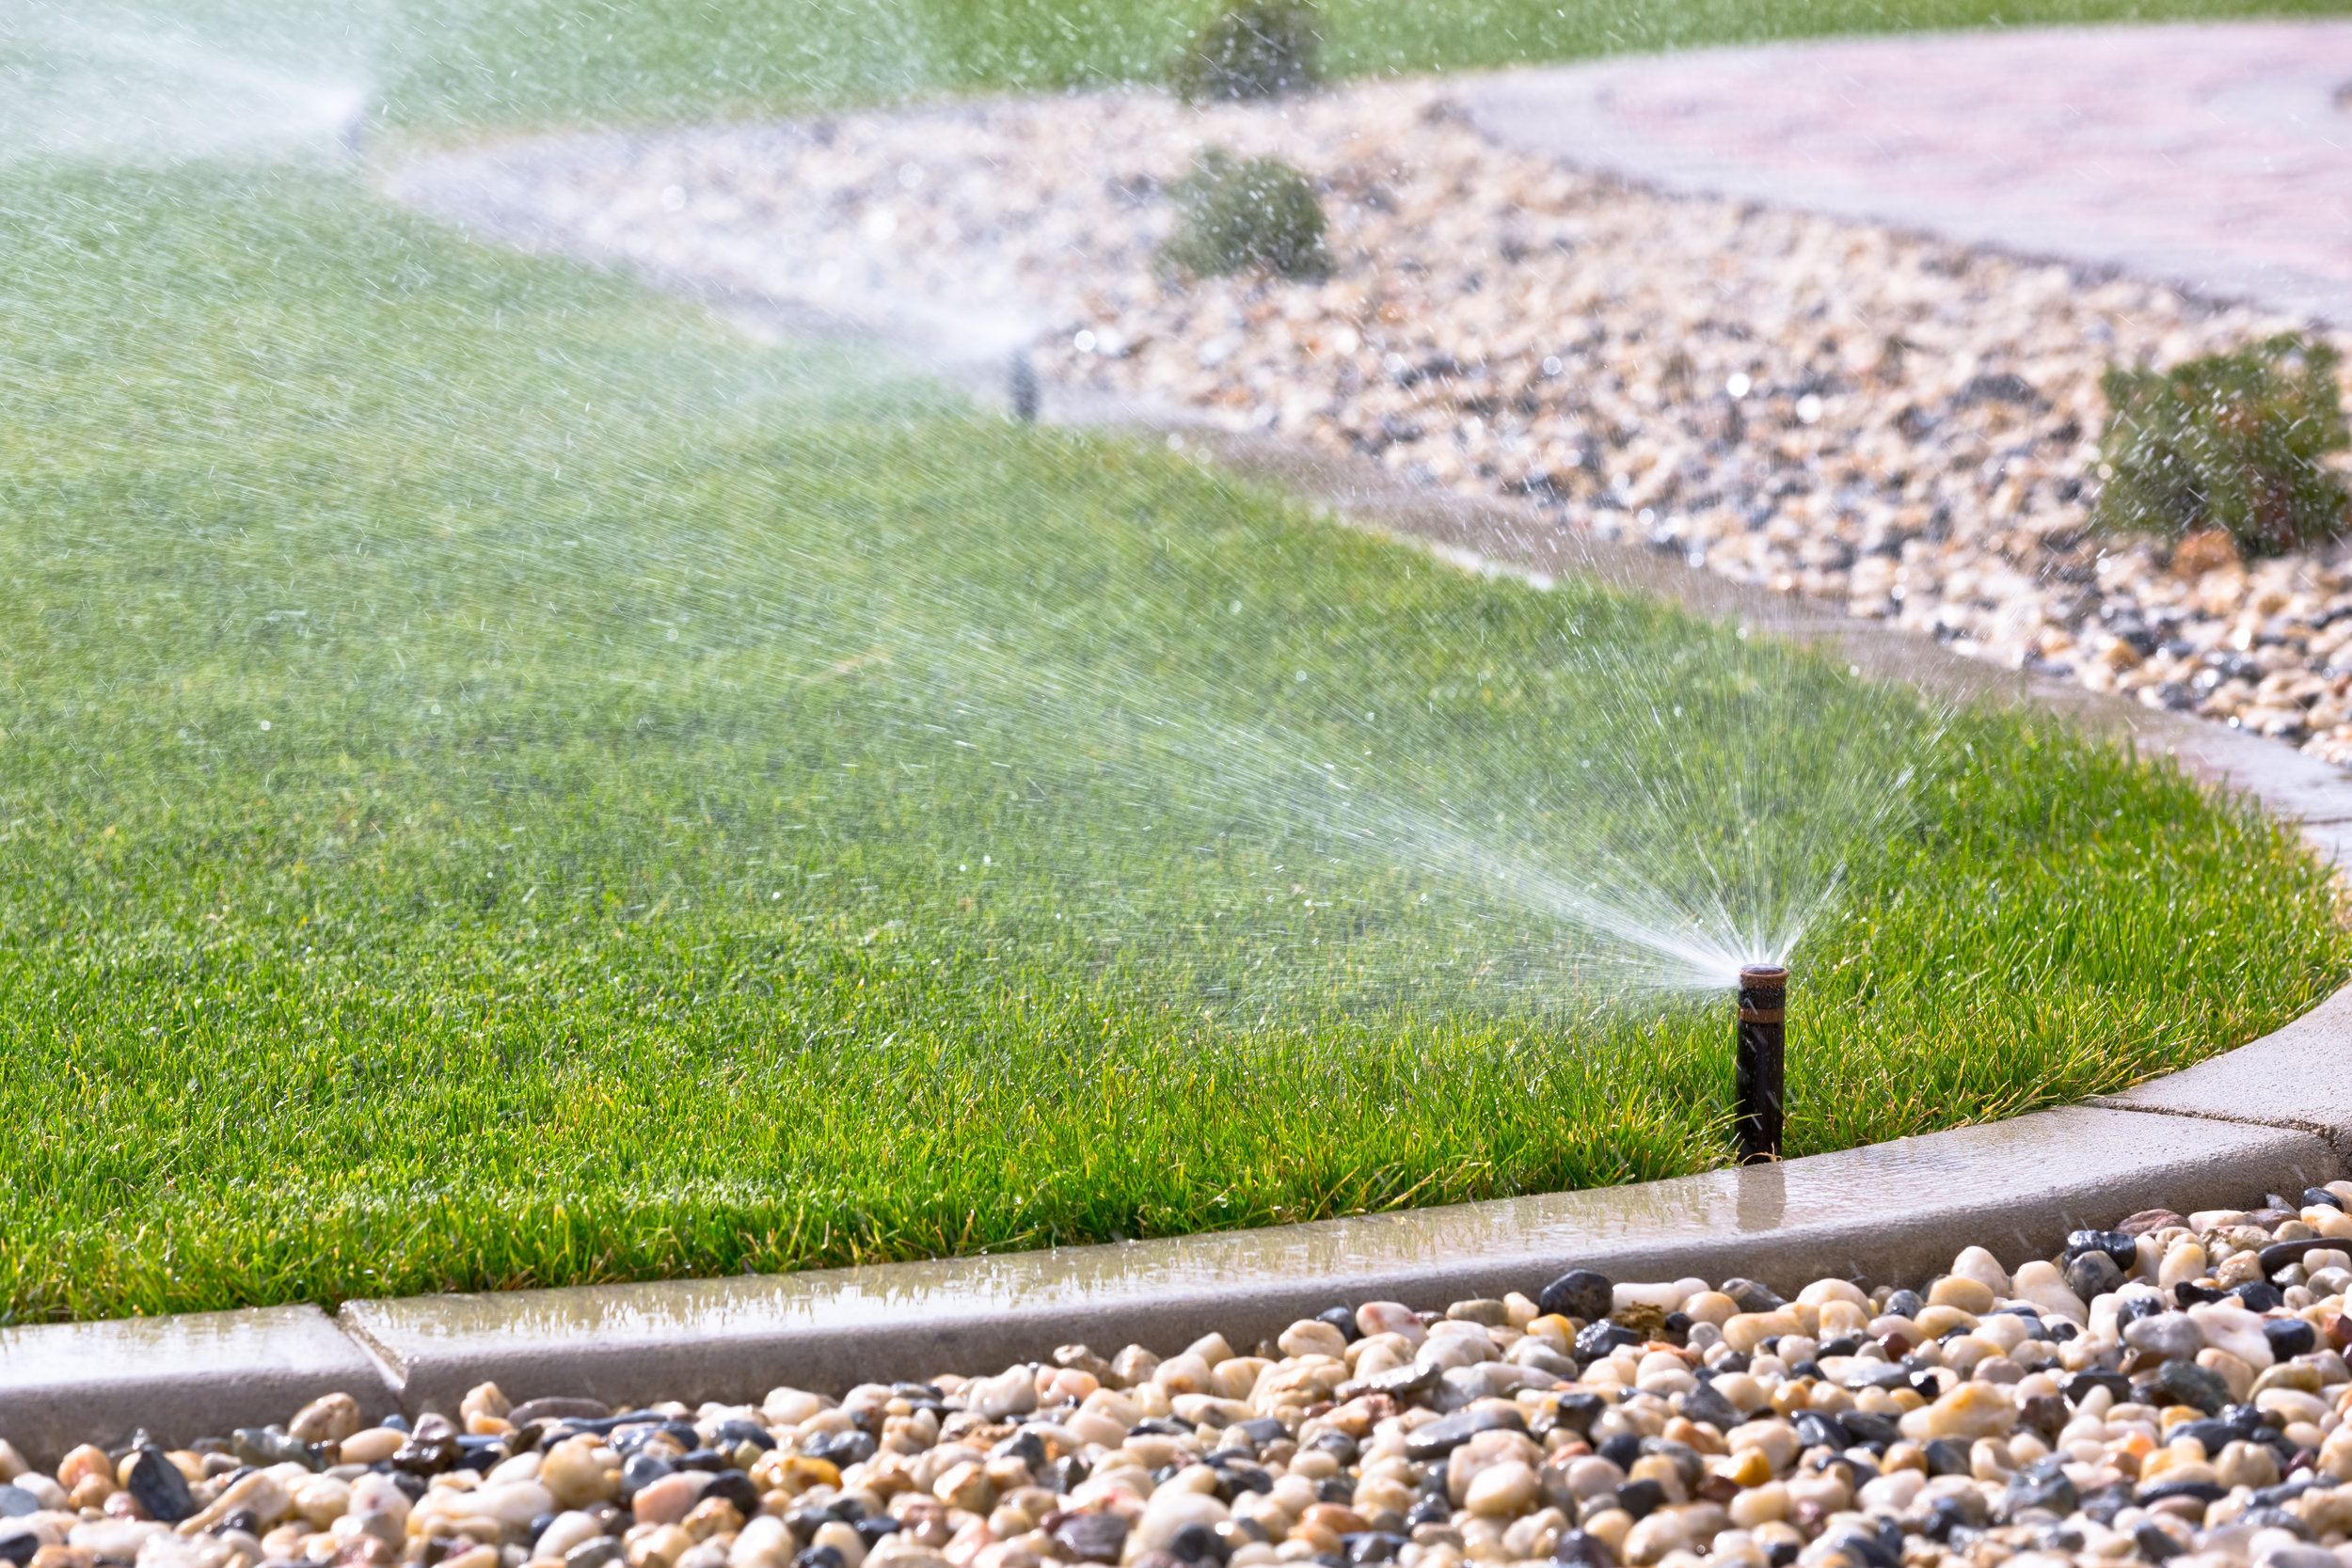 Irrigation - Sprinkler systems and irrigations needs